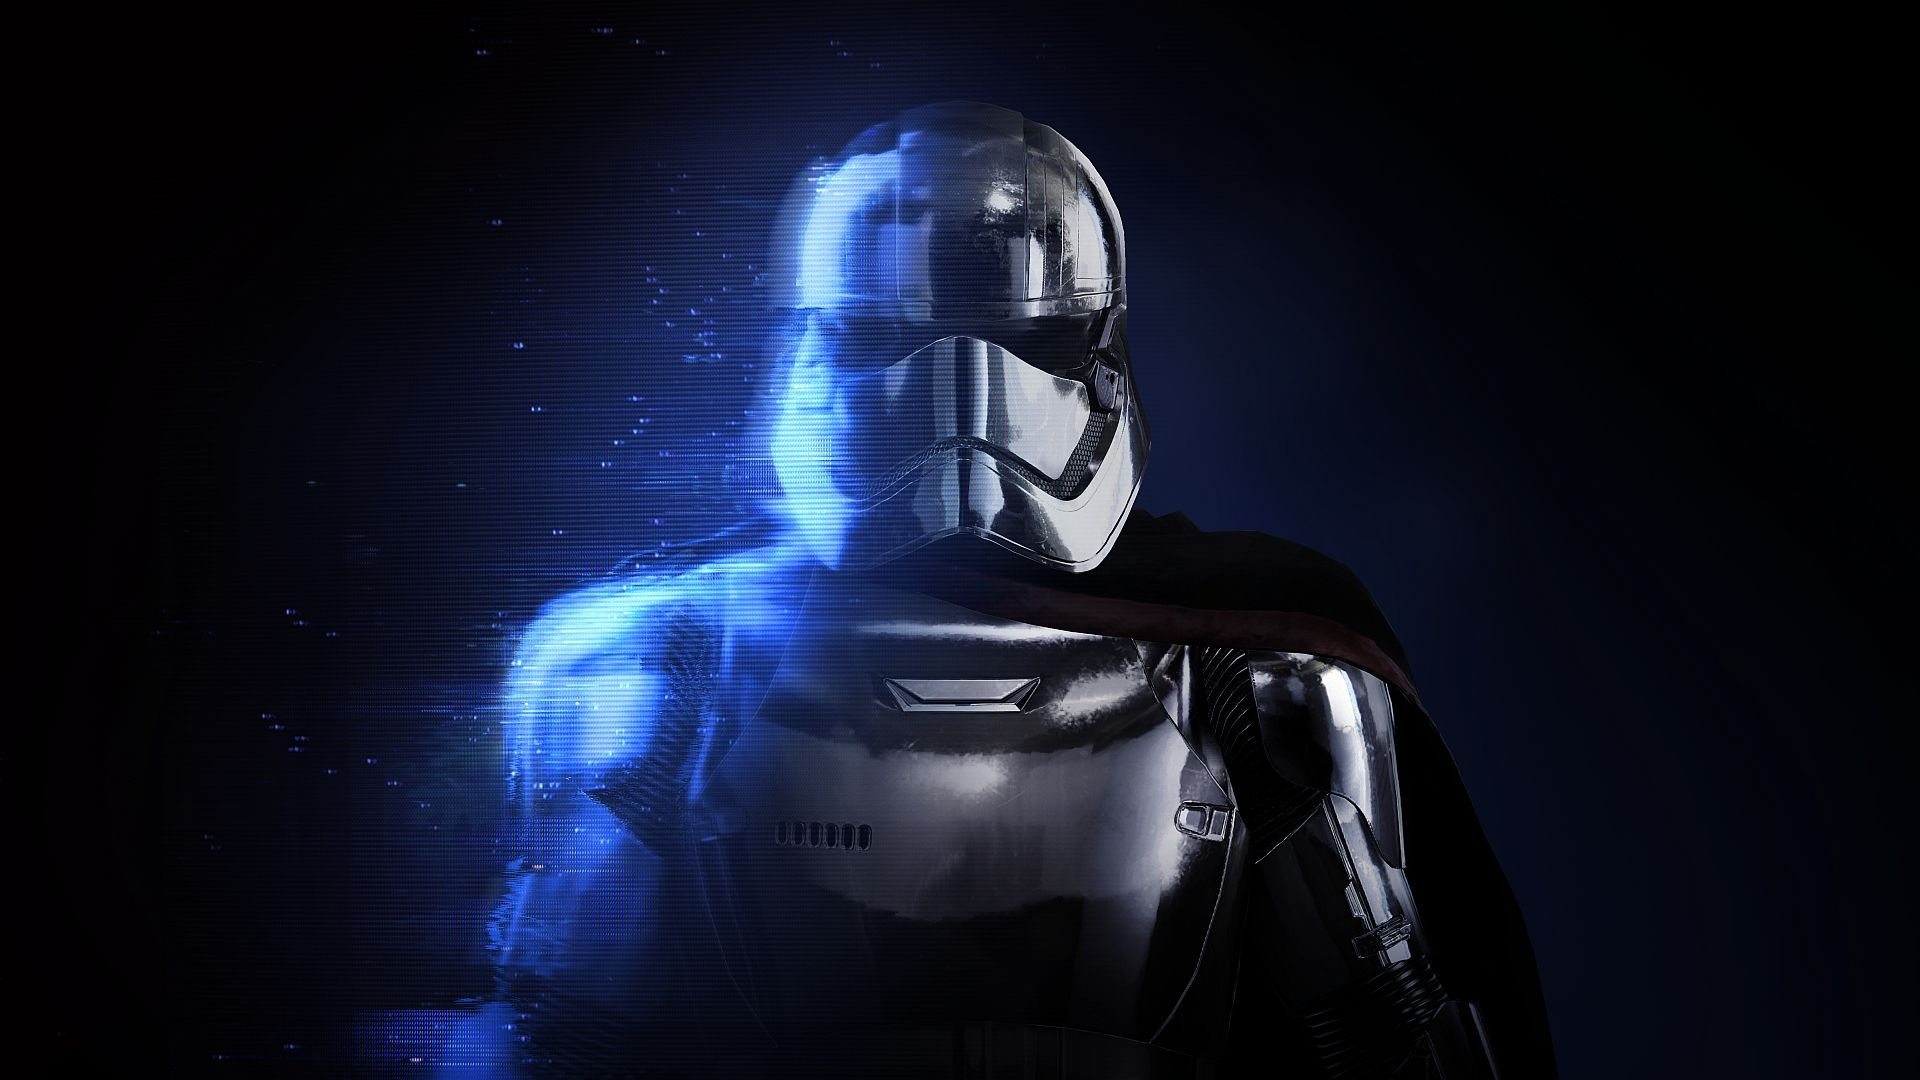 Star Wars Battlefront Ii Wallpaper 1920x1080